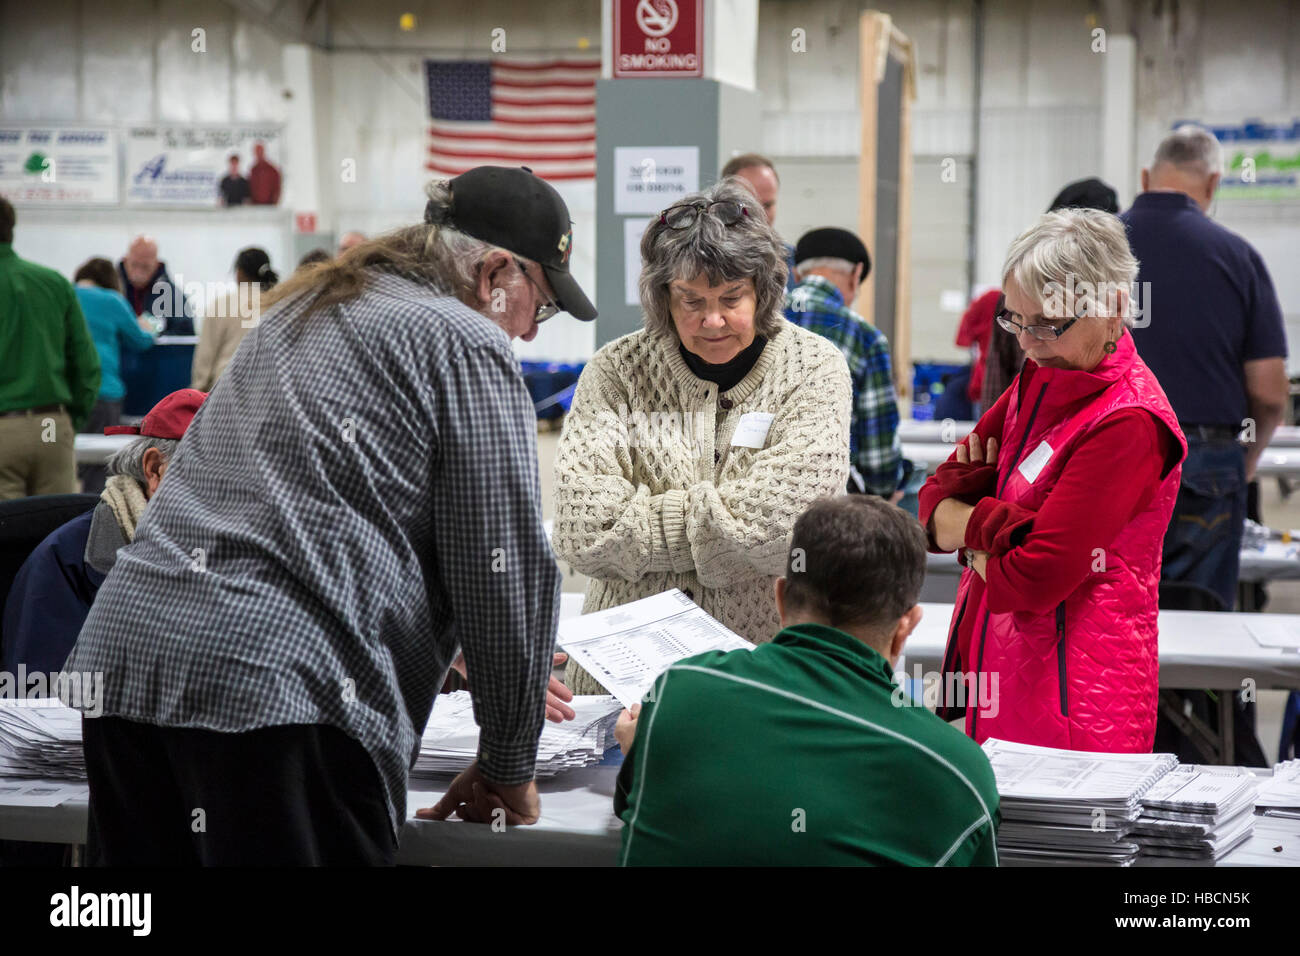 Michigan, USA. 6th December, 2016. Watched by candidates' observers, workers in Ingham County, Michigan recount - Stock Image